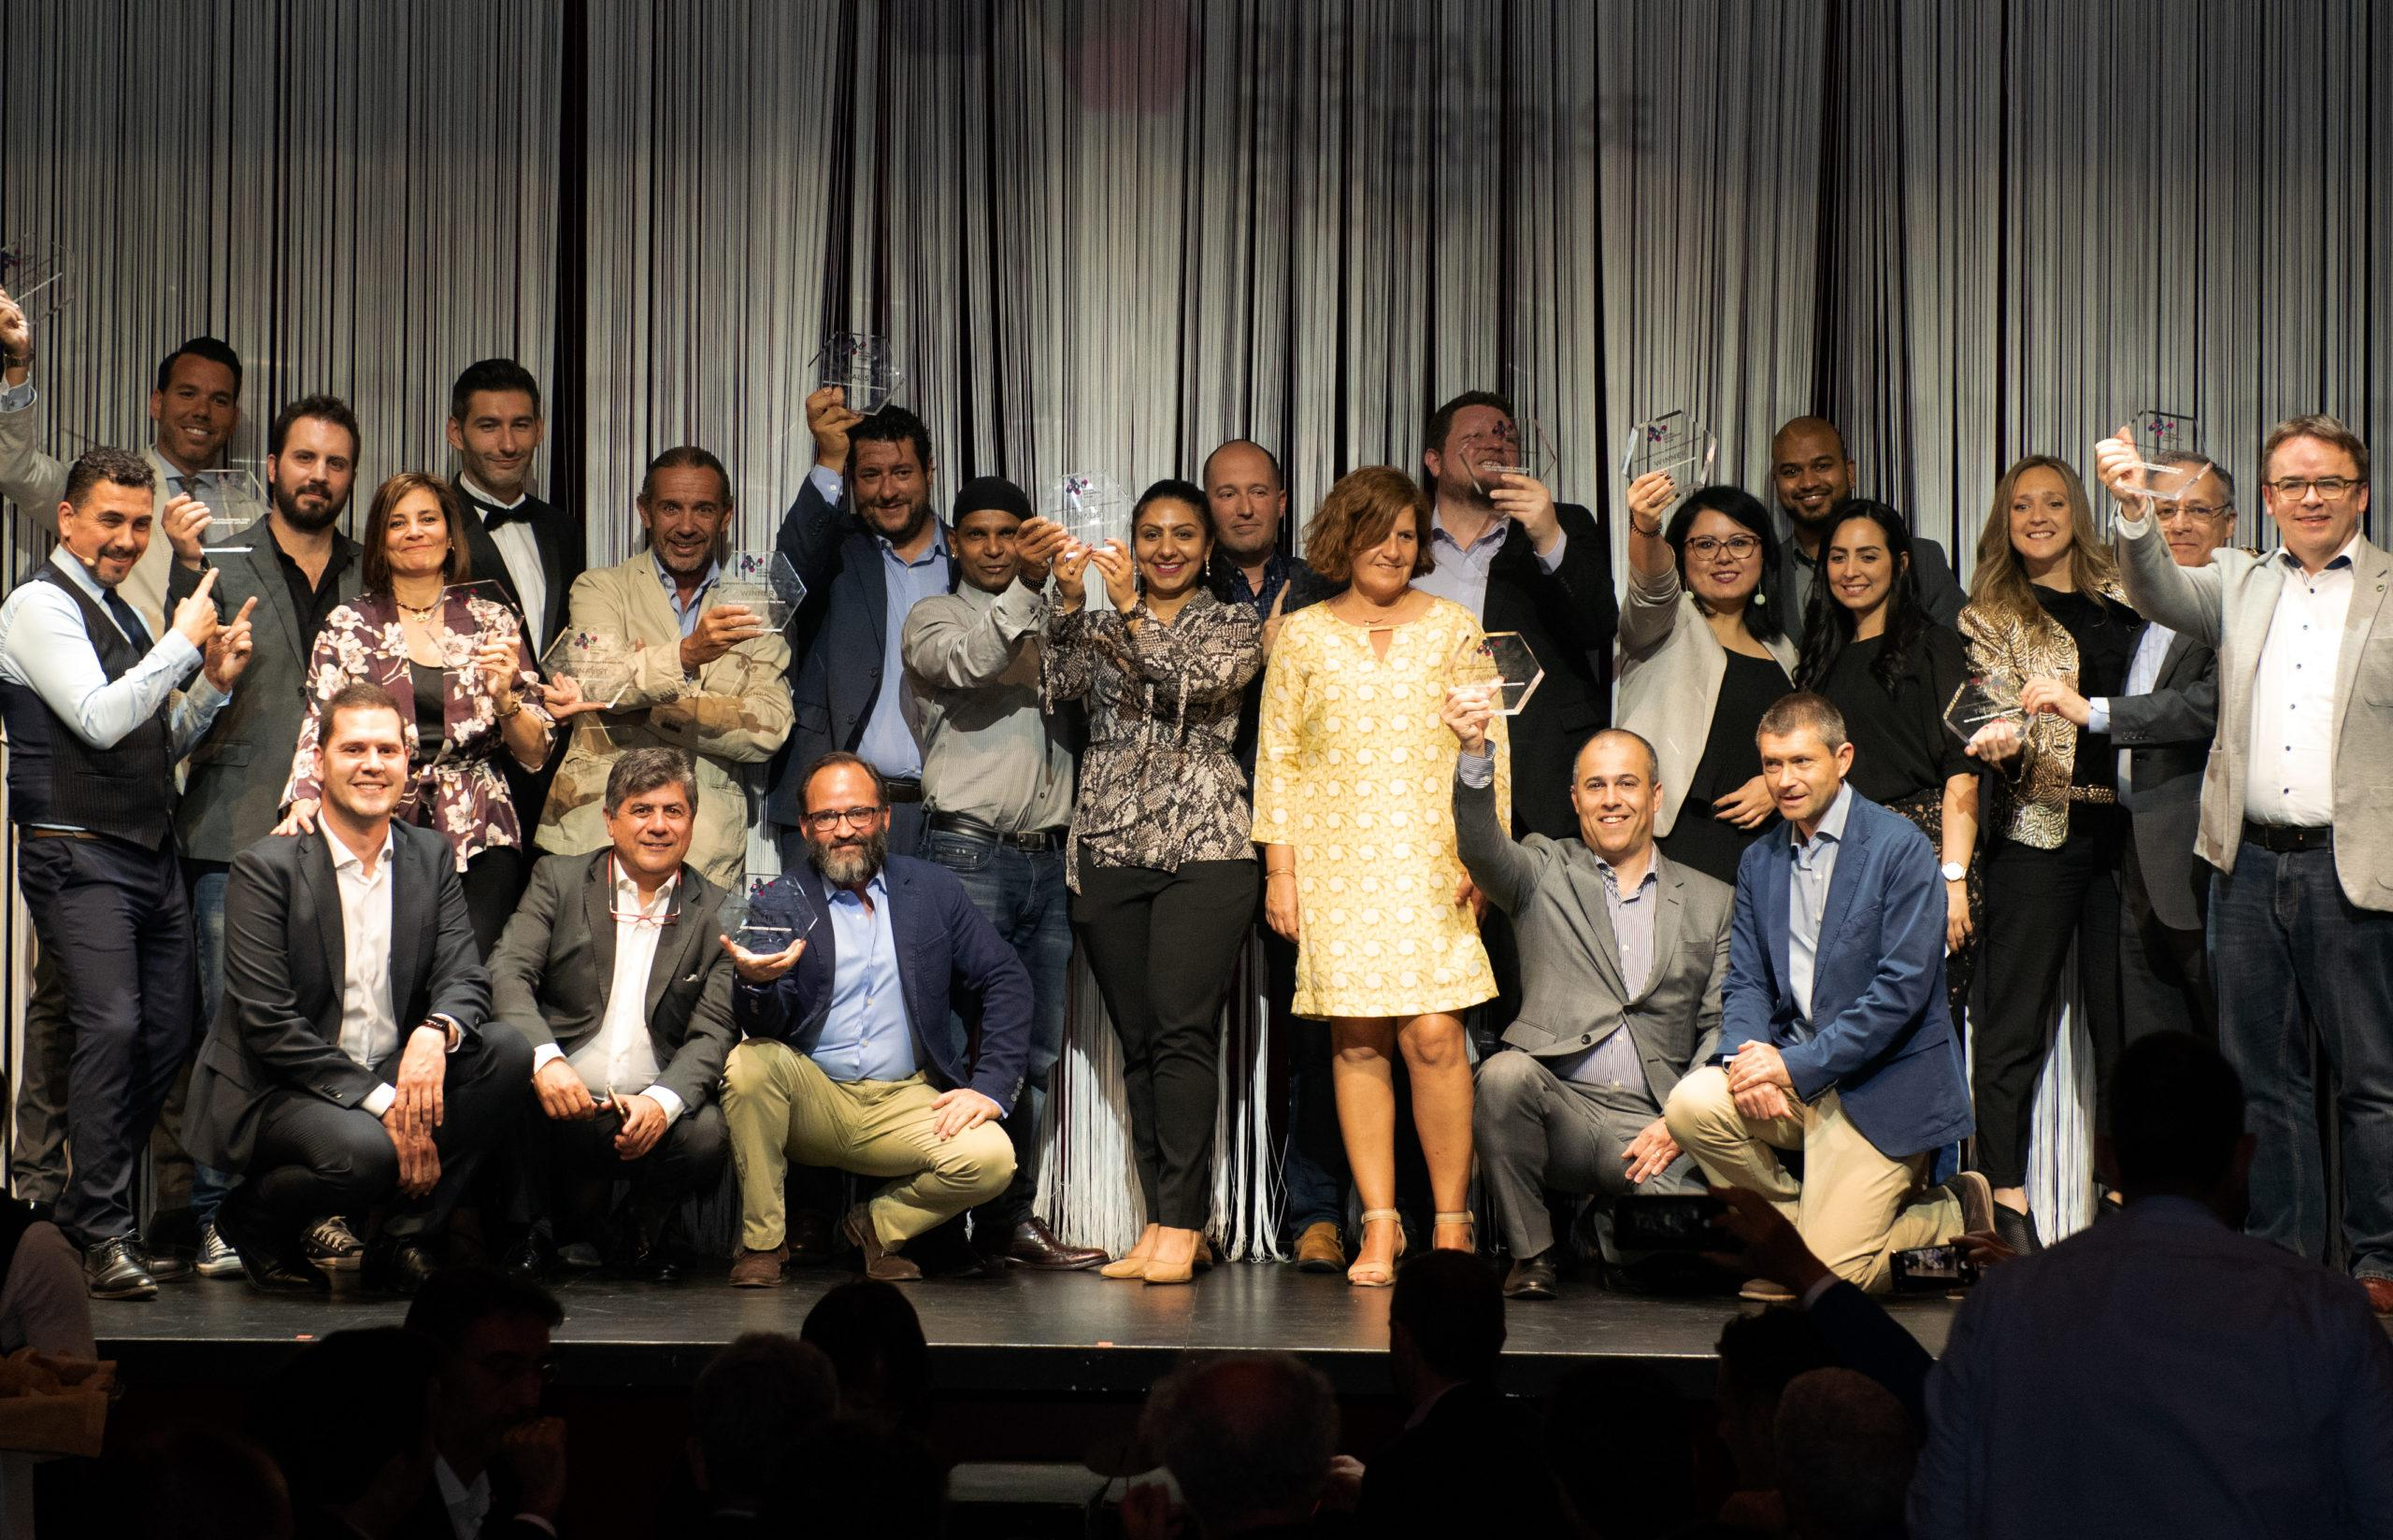 Pick&Pack premia los proyectos más innovadores y sostenibles en los Smart Logistics & Packaging Awards 2020